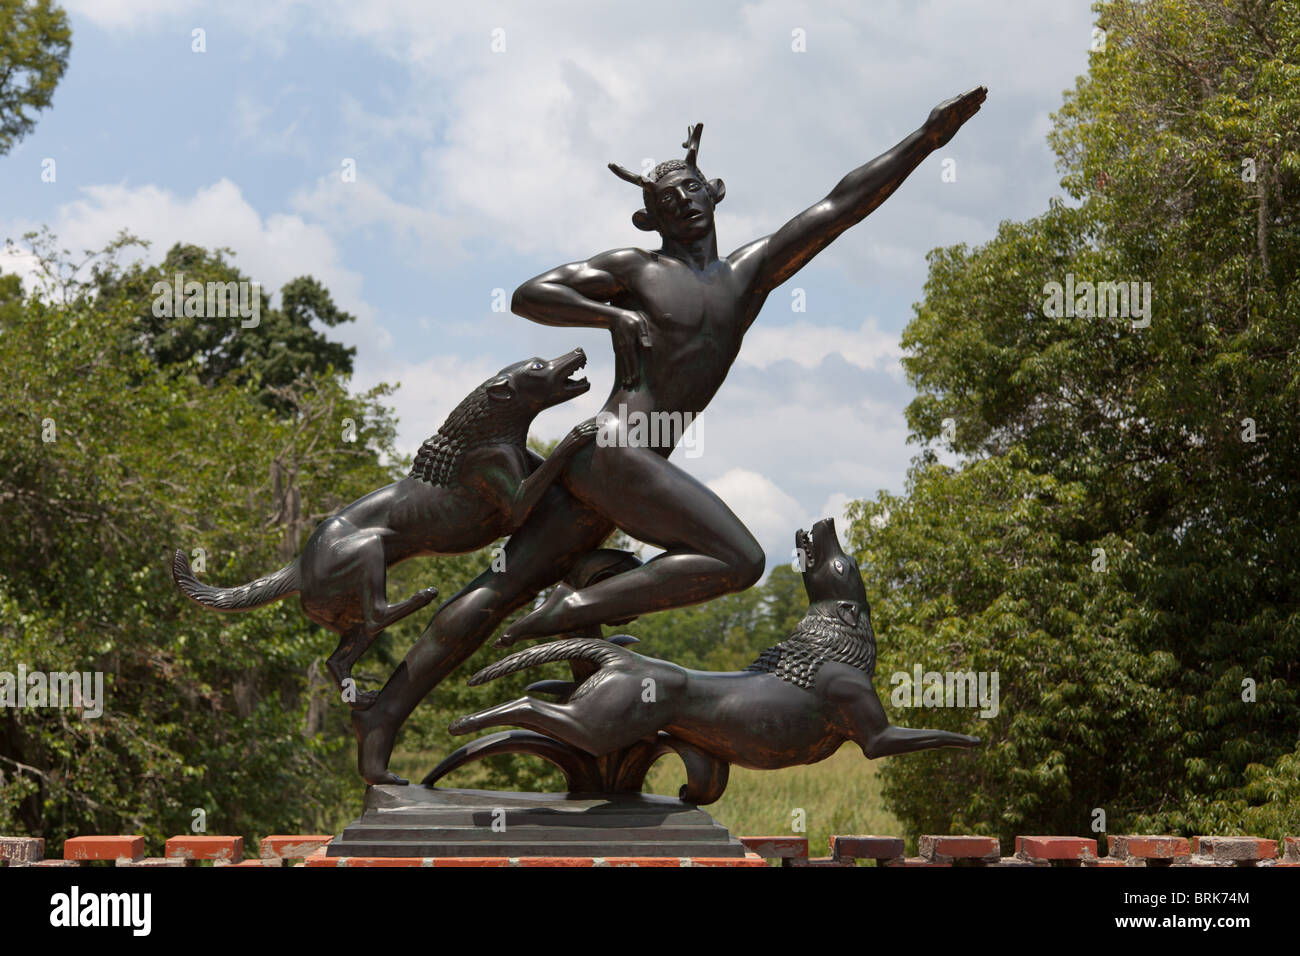 Actaeon By Paul Howard Manship In Brookgreen Gardens, South Carolina    Stock Image